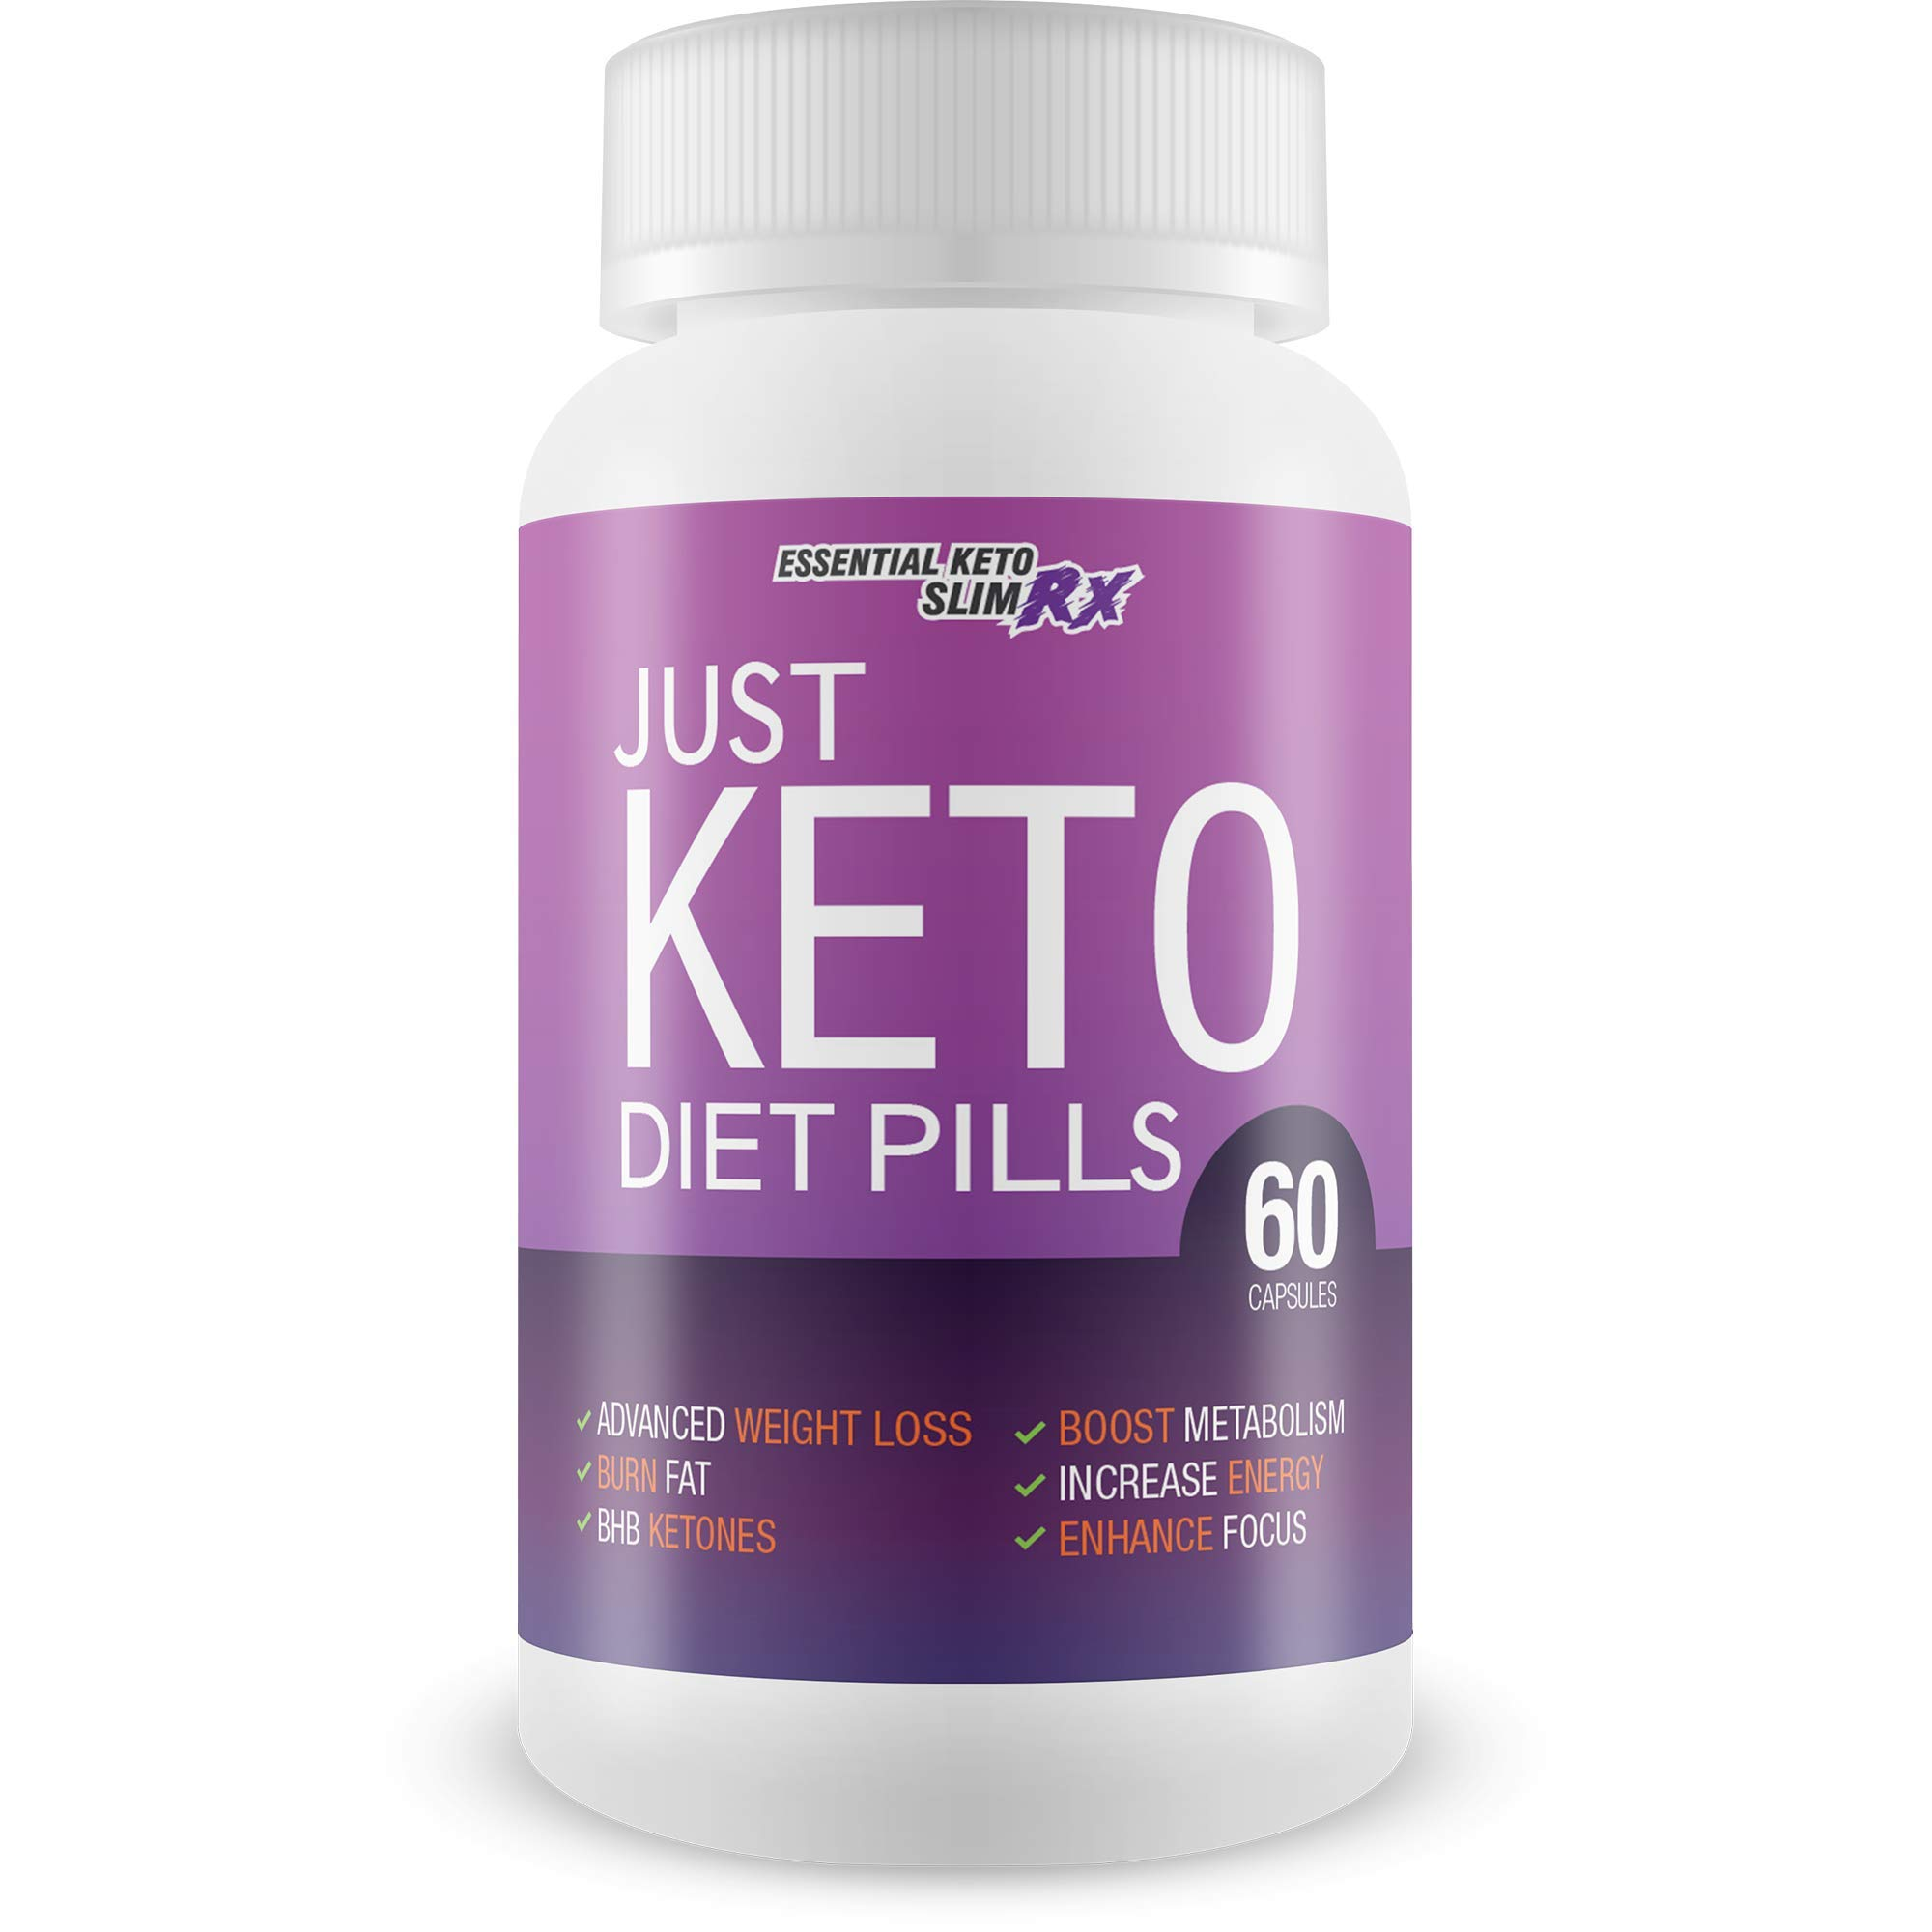 Just Keto Diet Pills - Weight Loss Pills - Burn More Fat - Lose More Weight - Keto Boost Keto Fat Burning - Burn Fat Faster Bhb Supported Ketosis - Weight Loss for Women by Essential Keto Slim RX by Essential Keto Slim RX